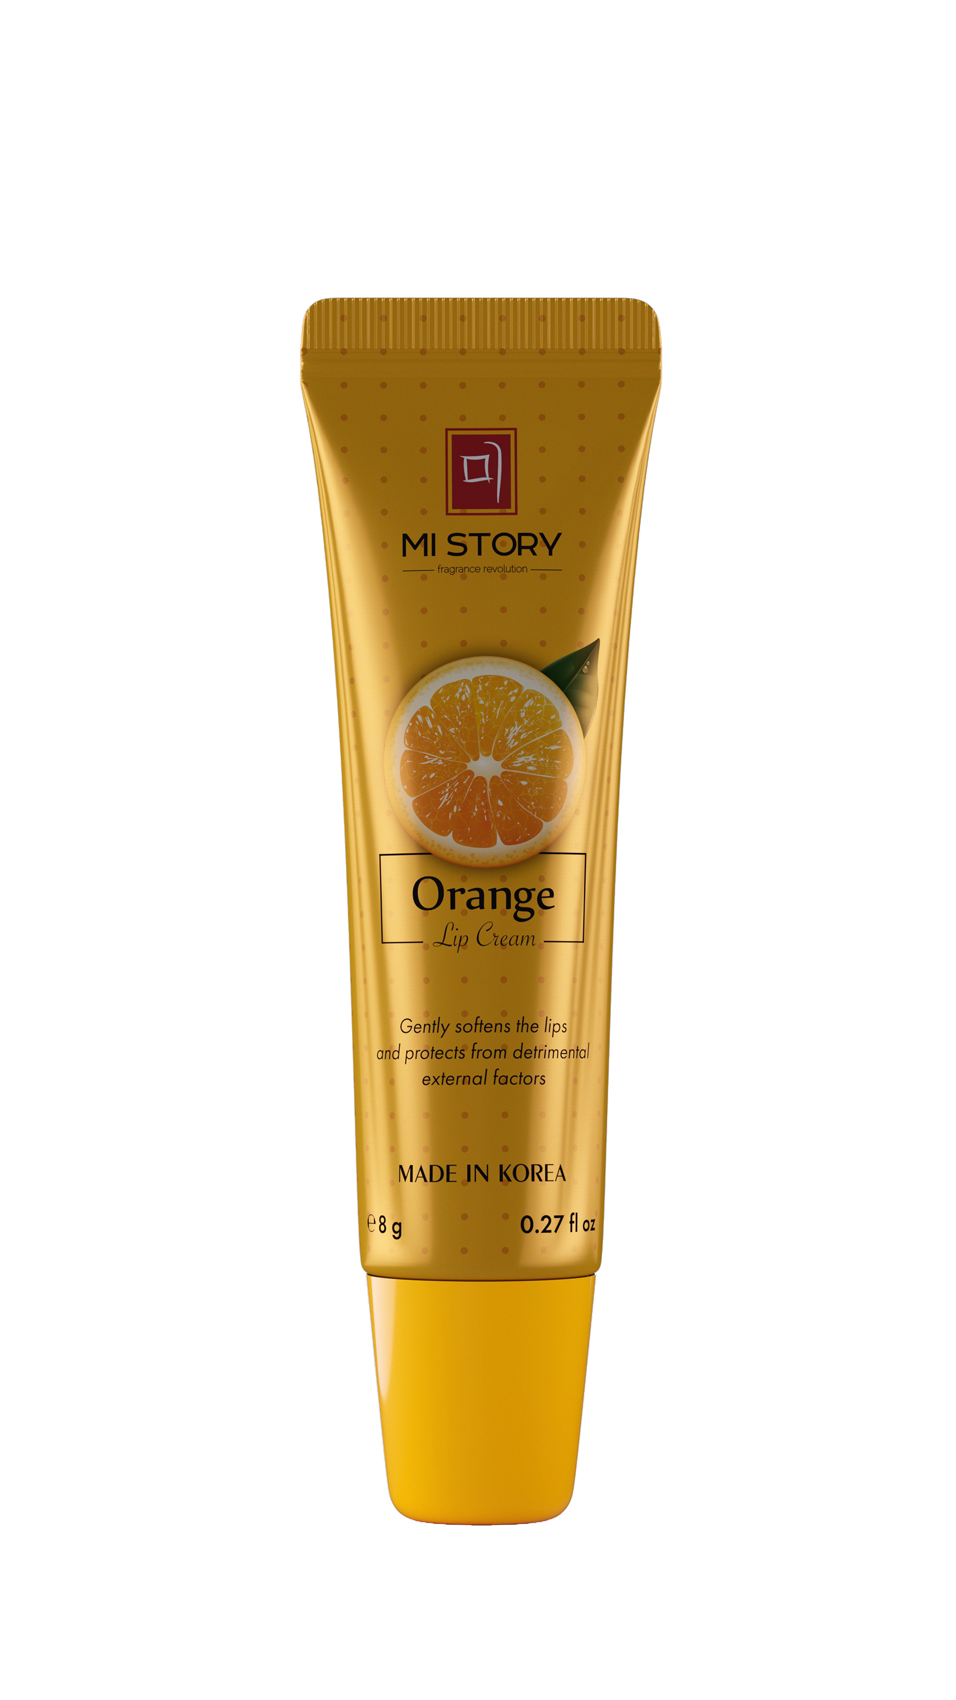 Mi Story Orange Lip Cream Крем для губ (8 g) NL.MS.17.O